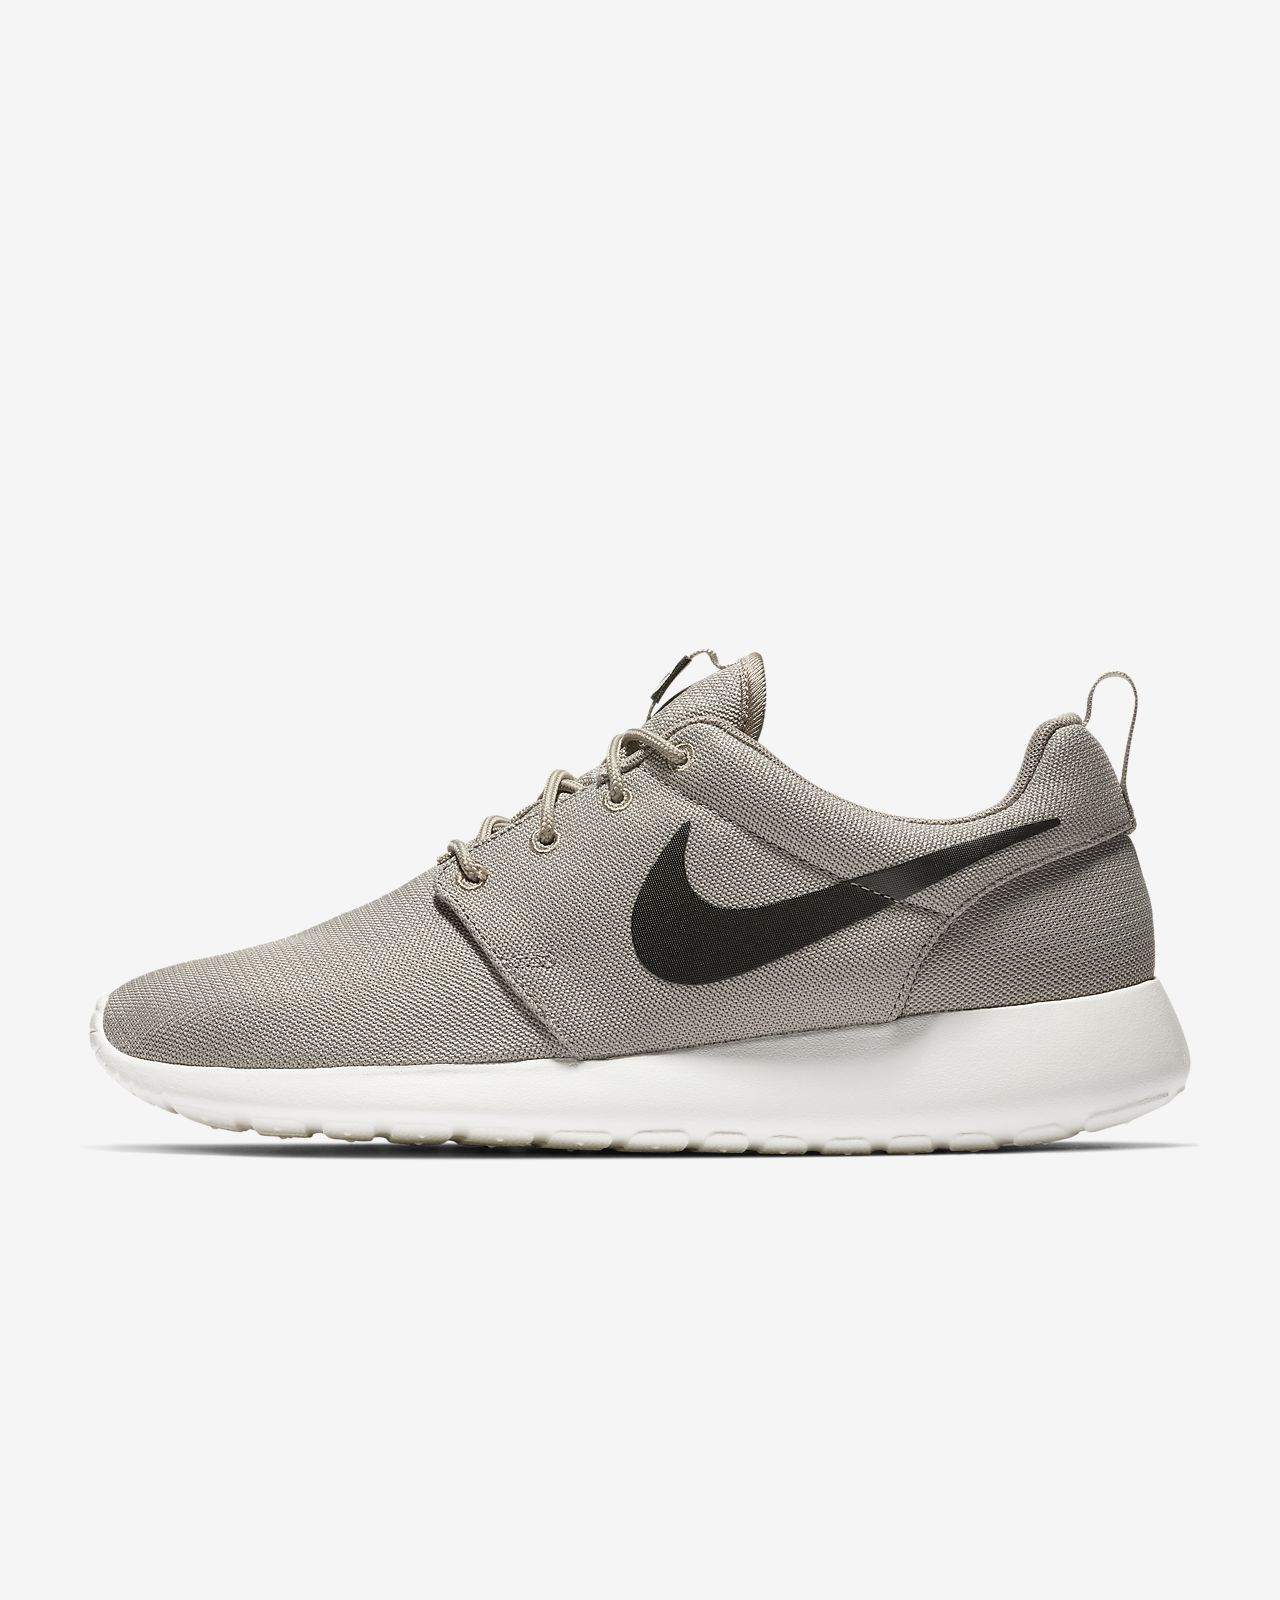 6ee55705885df Nike Roshe One Men s Shoe. Nike.com